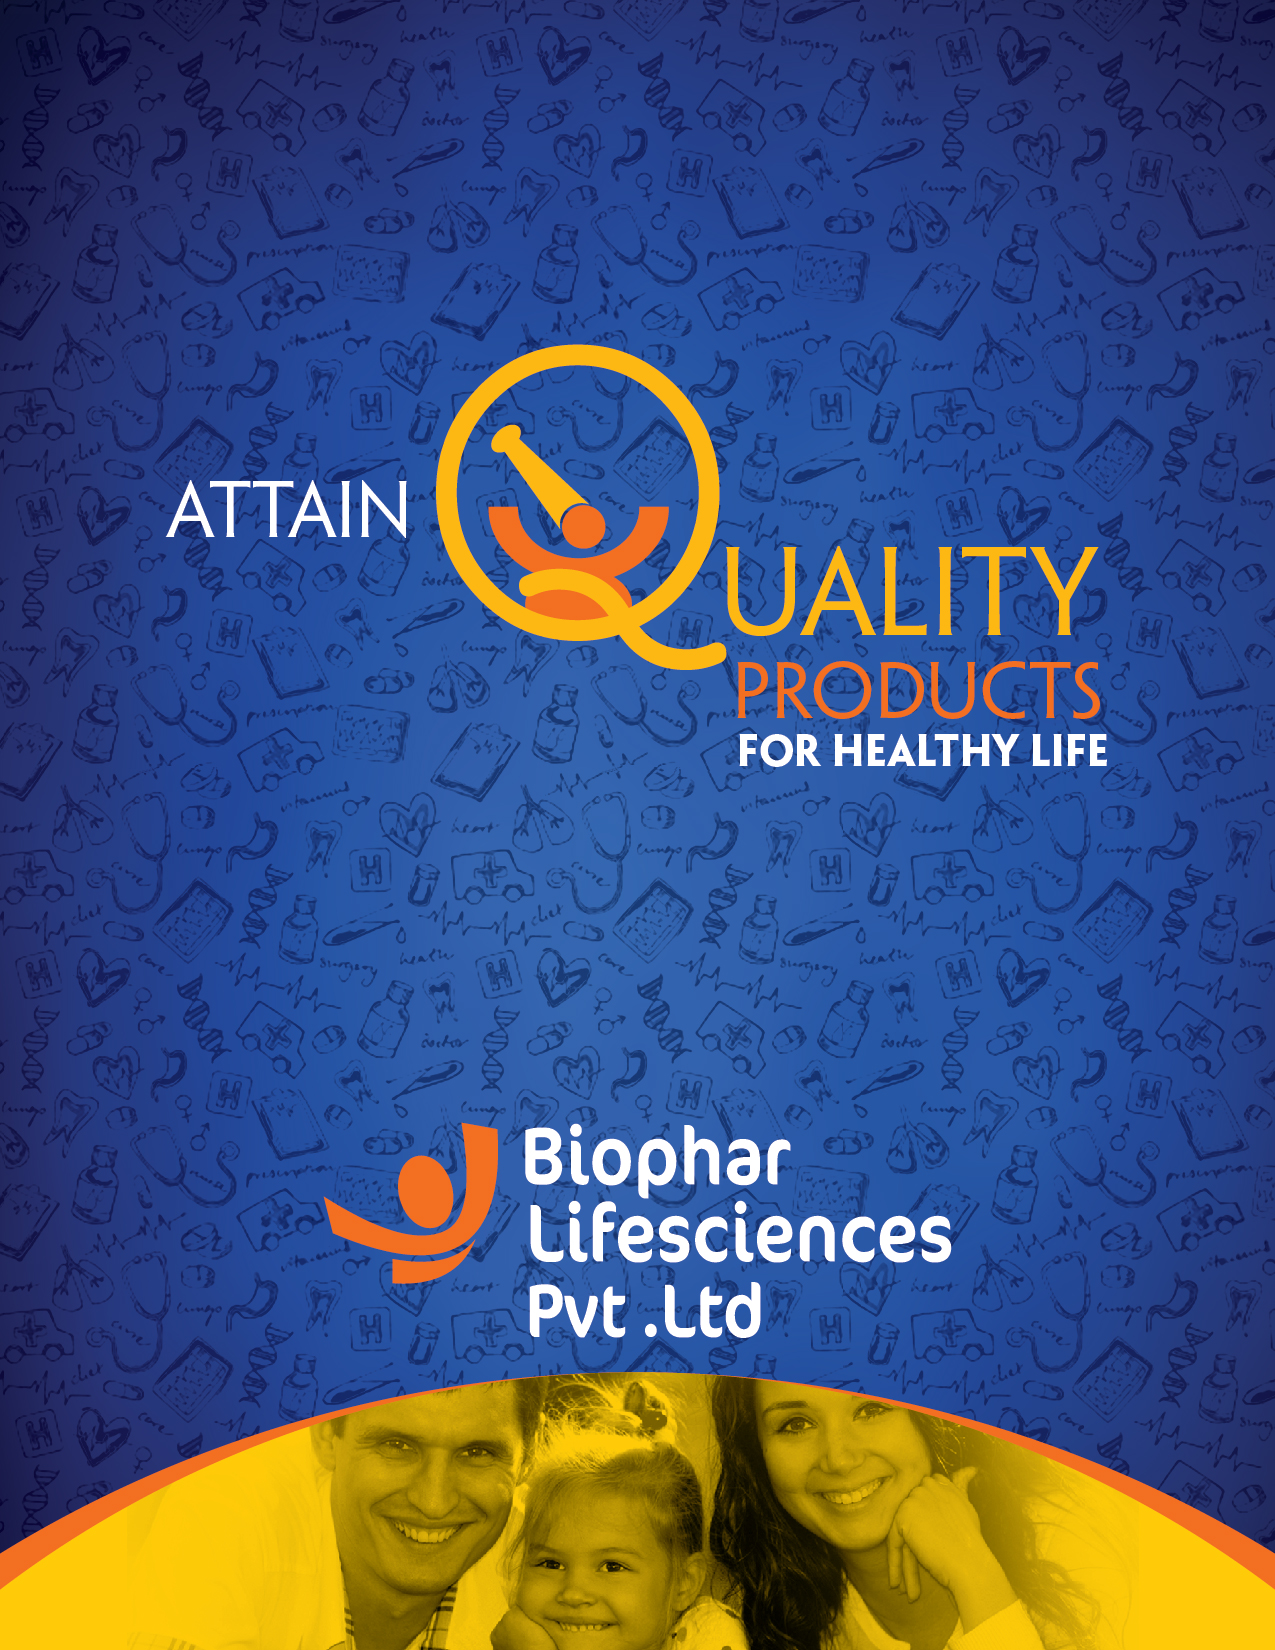 Attain Quality Products